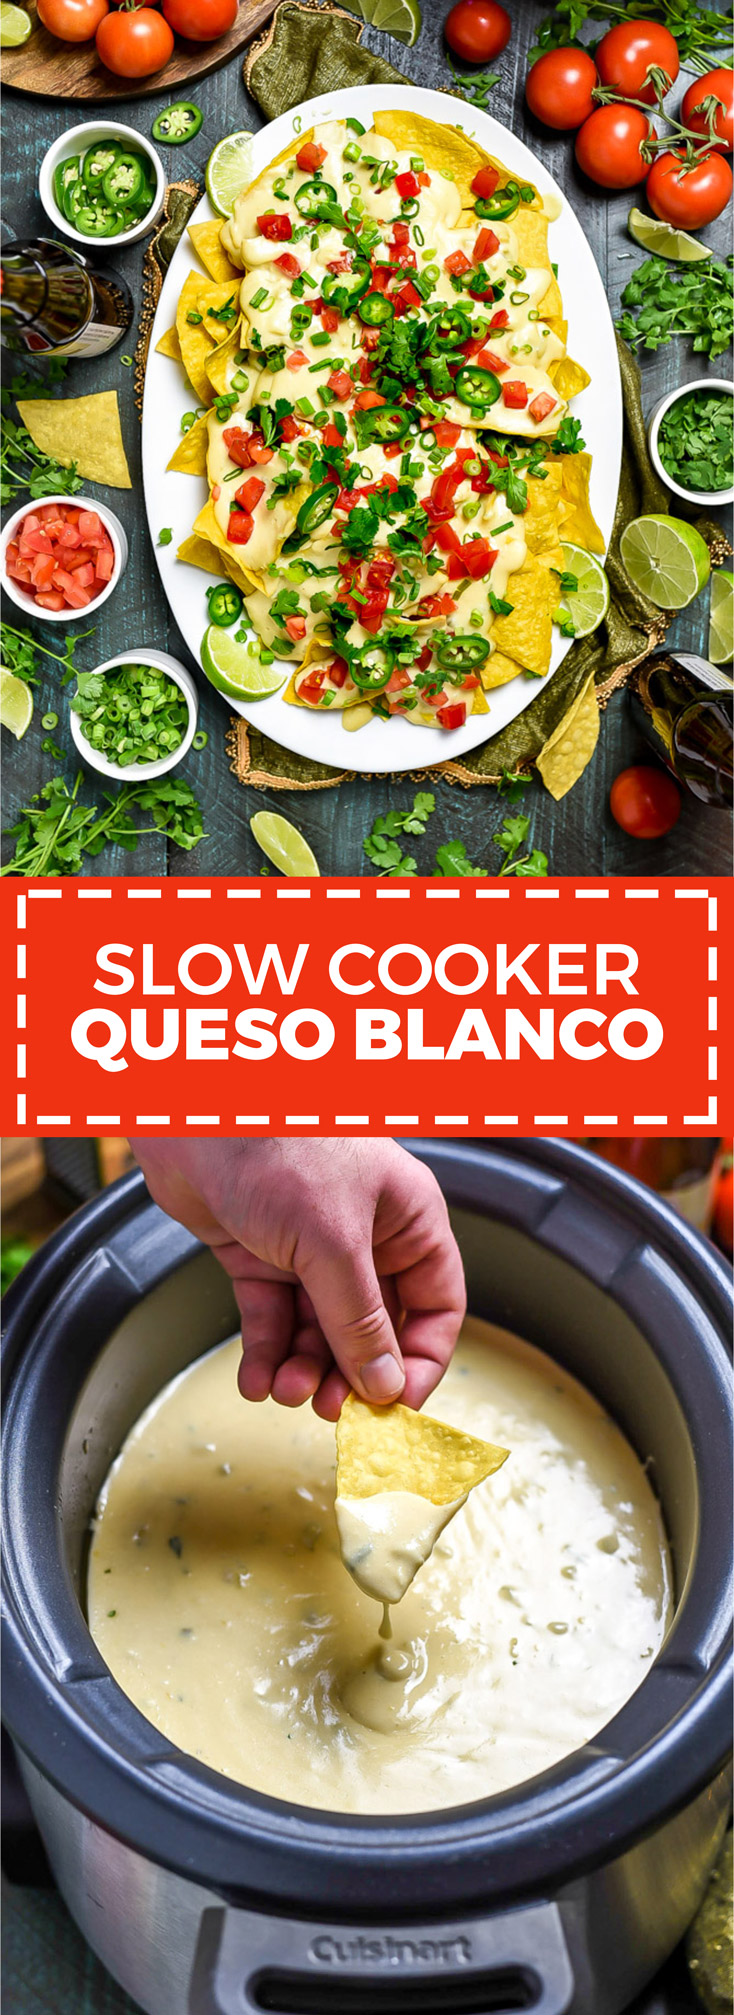 Slow Cooker Queso Blanco. This velvety, rich cheese dip is just as good-- if not better-- than the kind you get from your favorite Mexican restaurant. Serve it straight from the slow cooker (where it will keep warm) at a party, or ladle over nachos. | hostthetoast.com